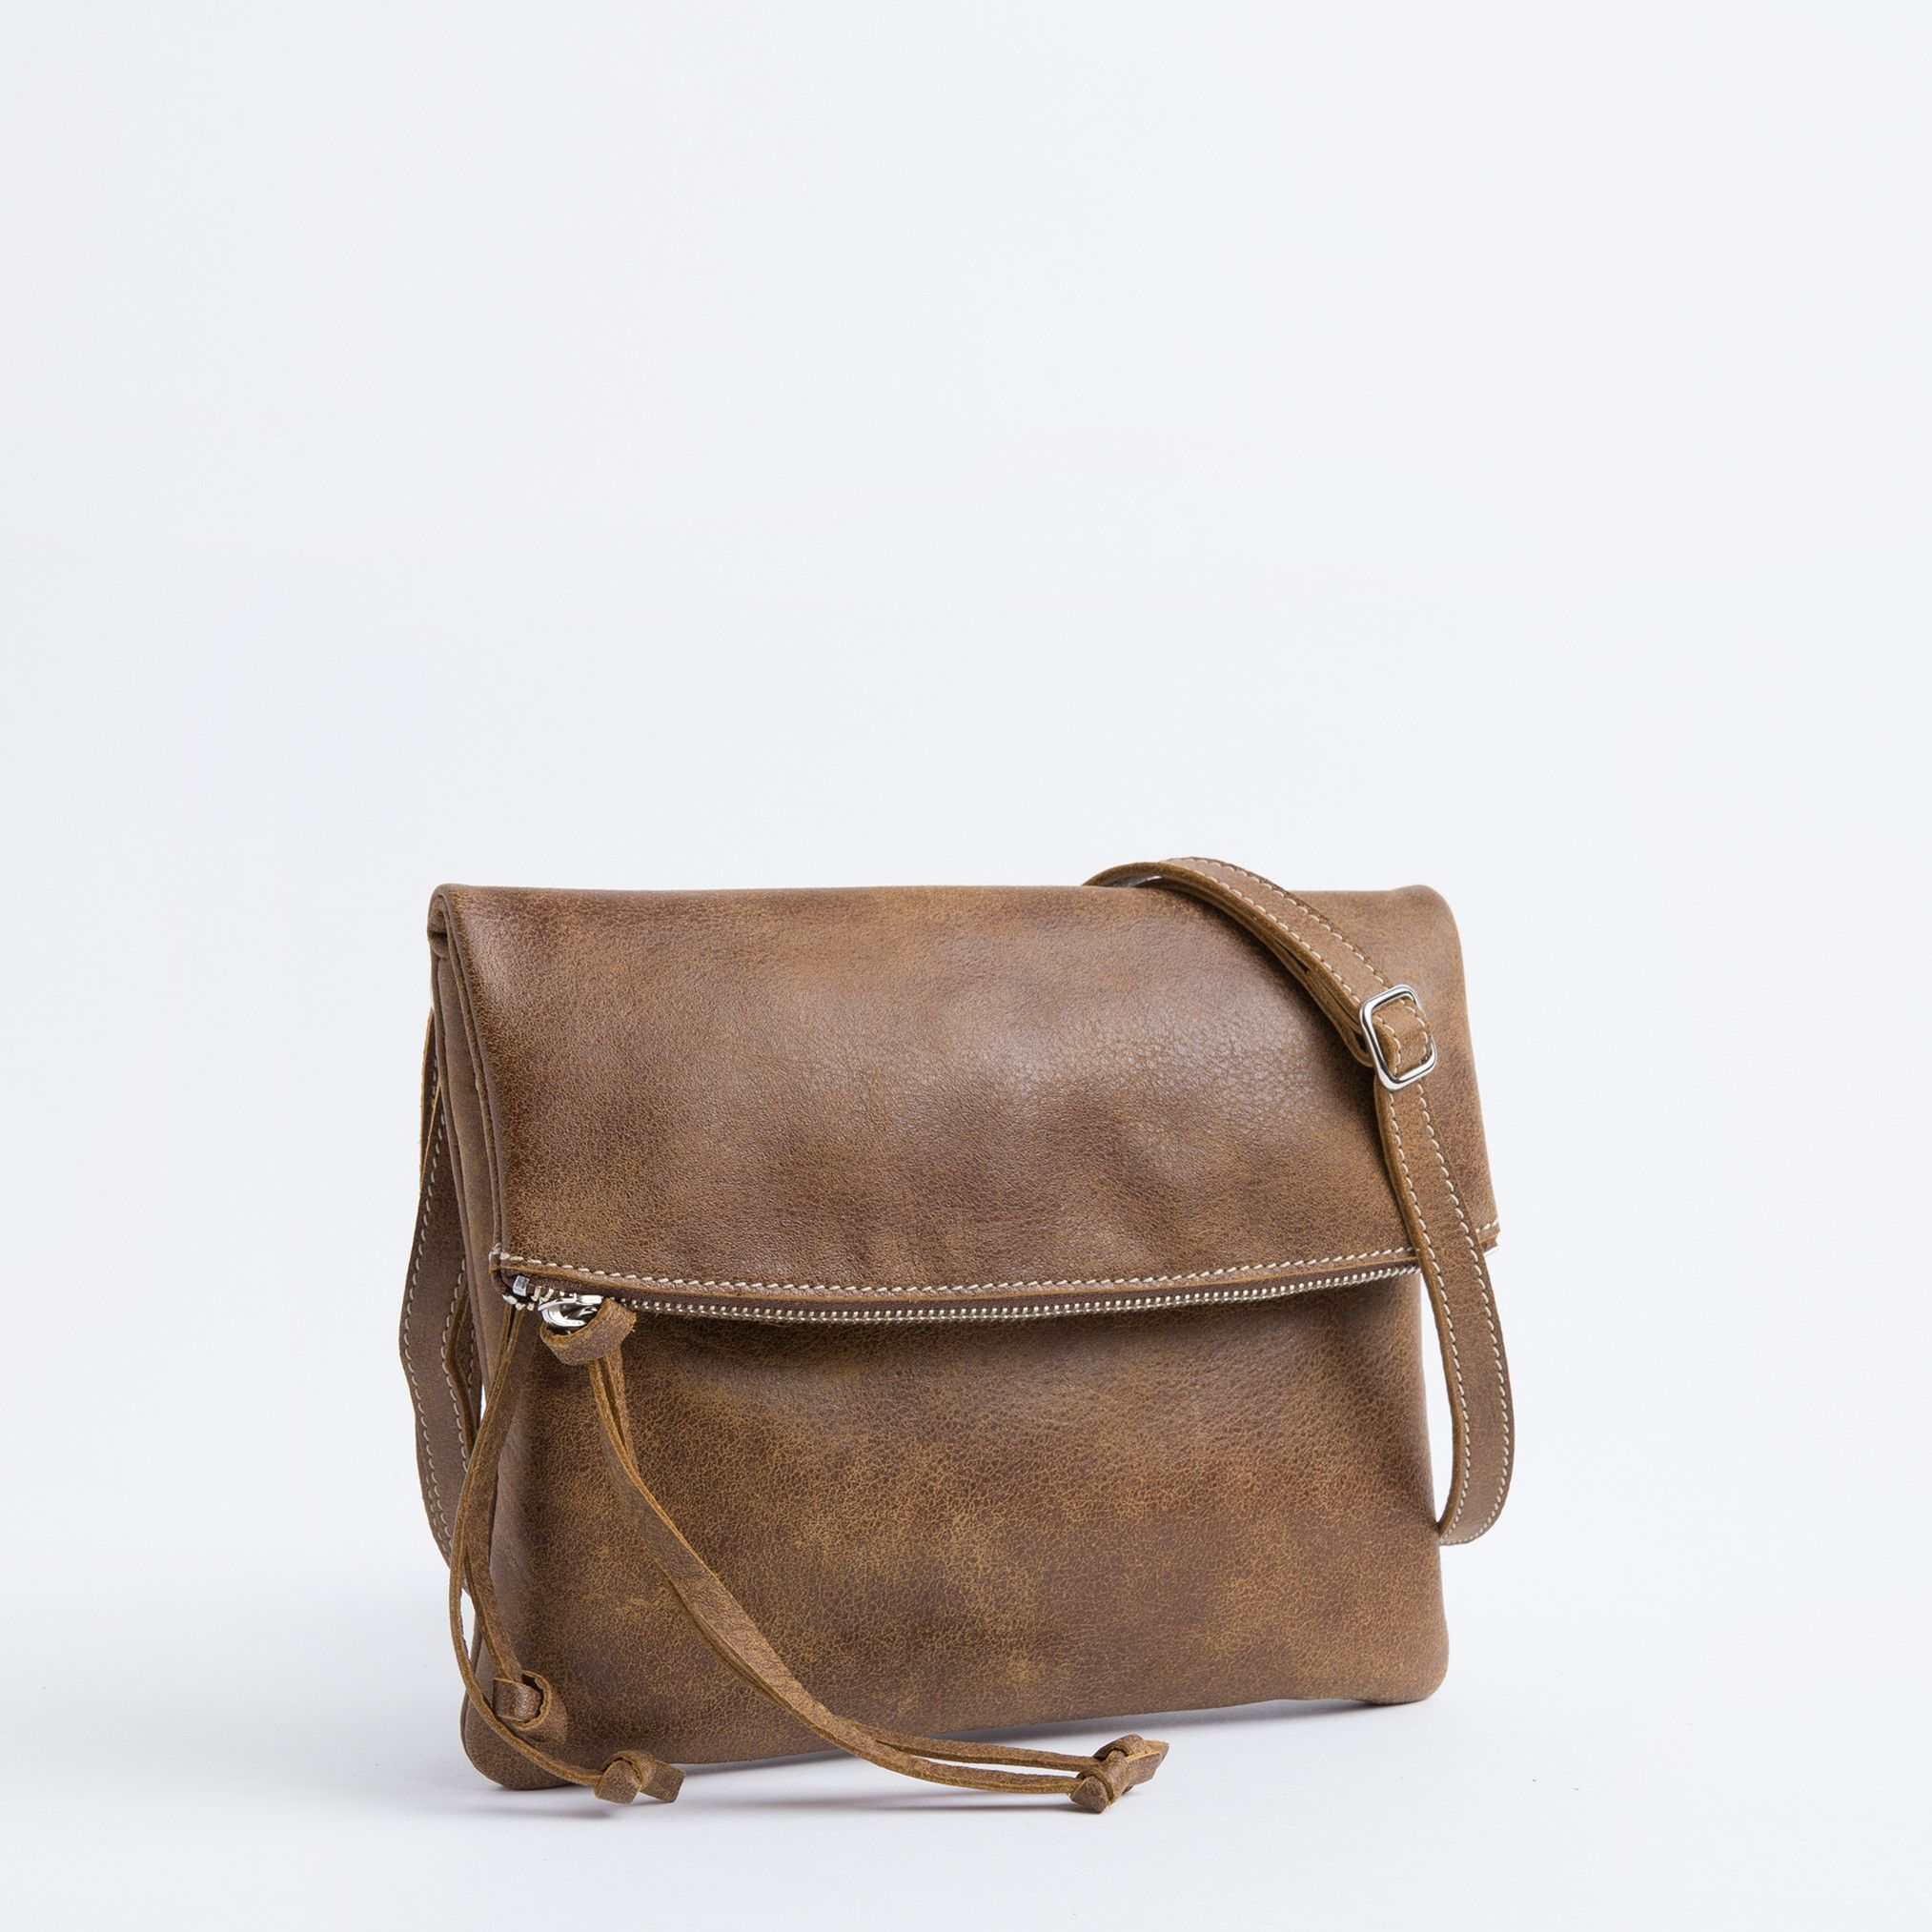 Jessie Bag Tribe Women S Leather Shoulder Bags Roots